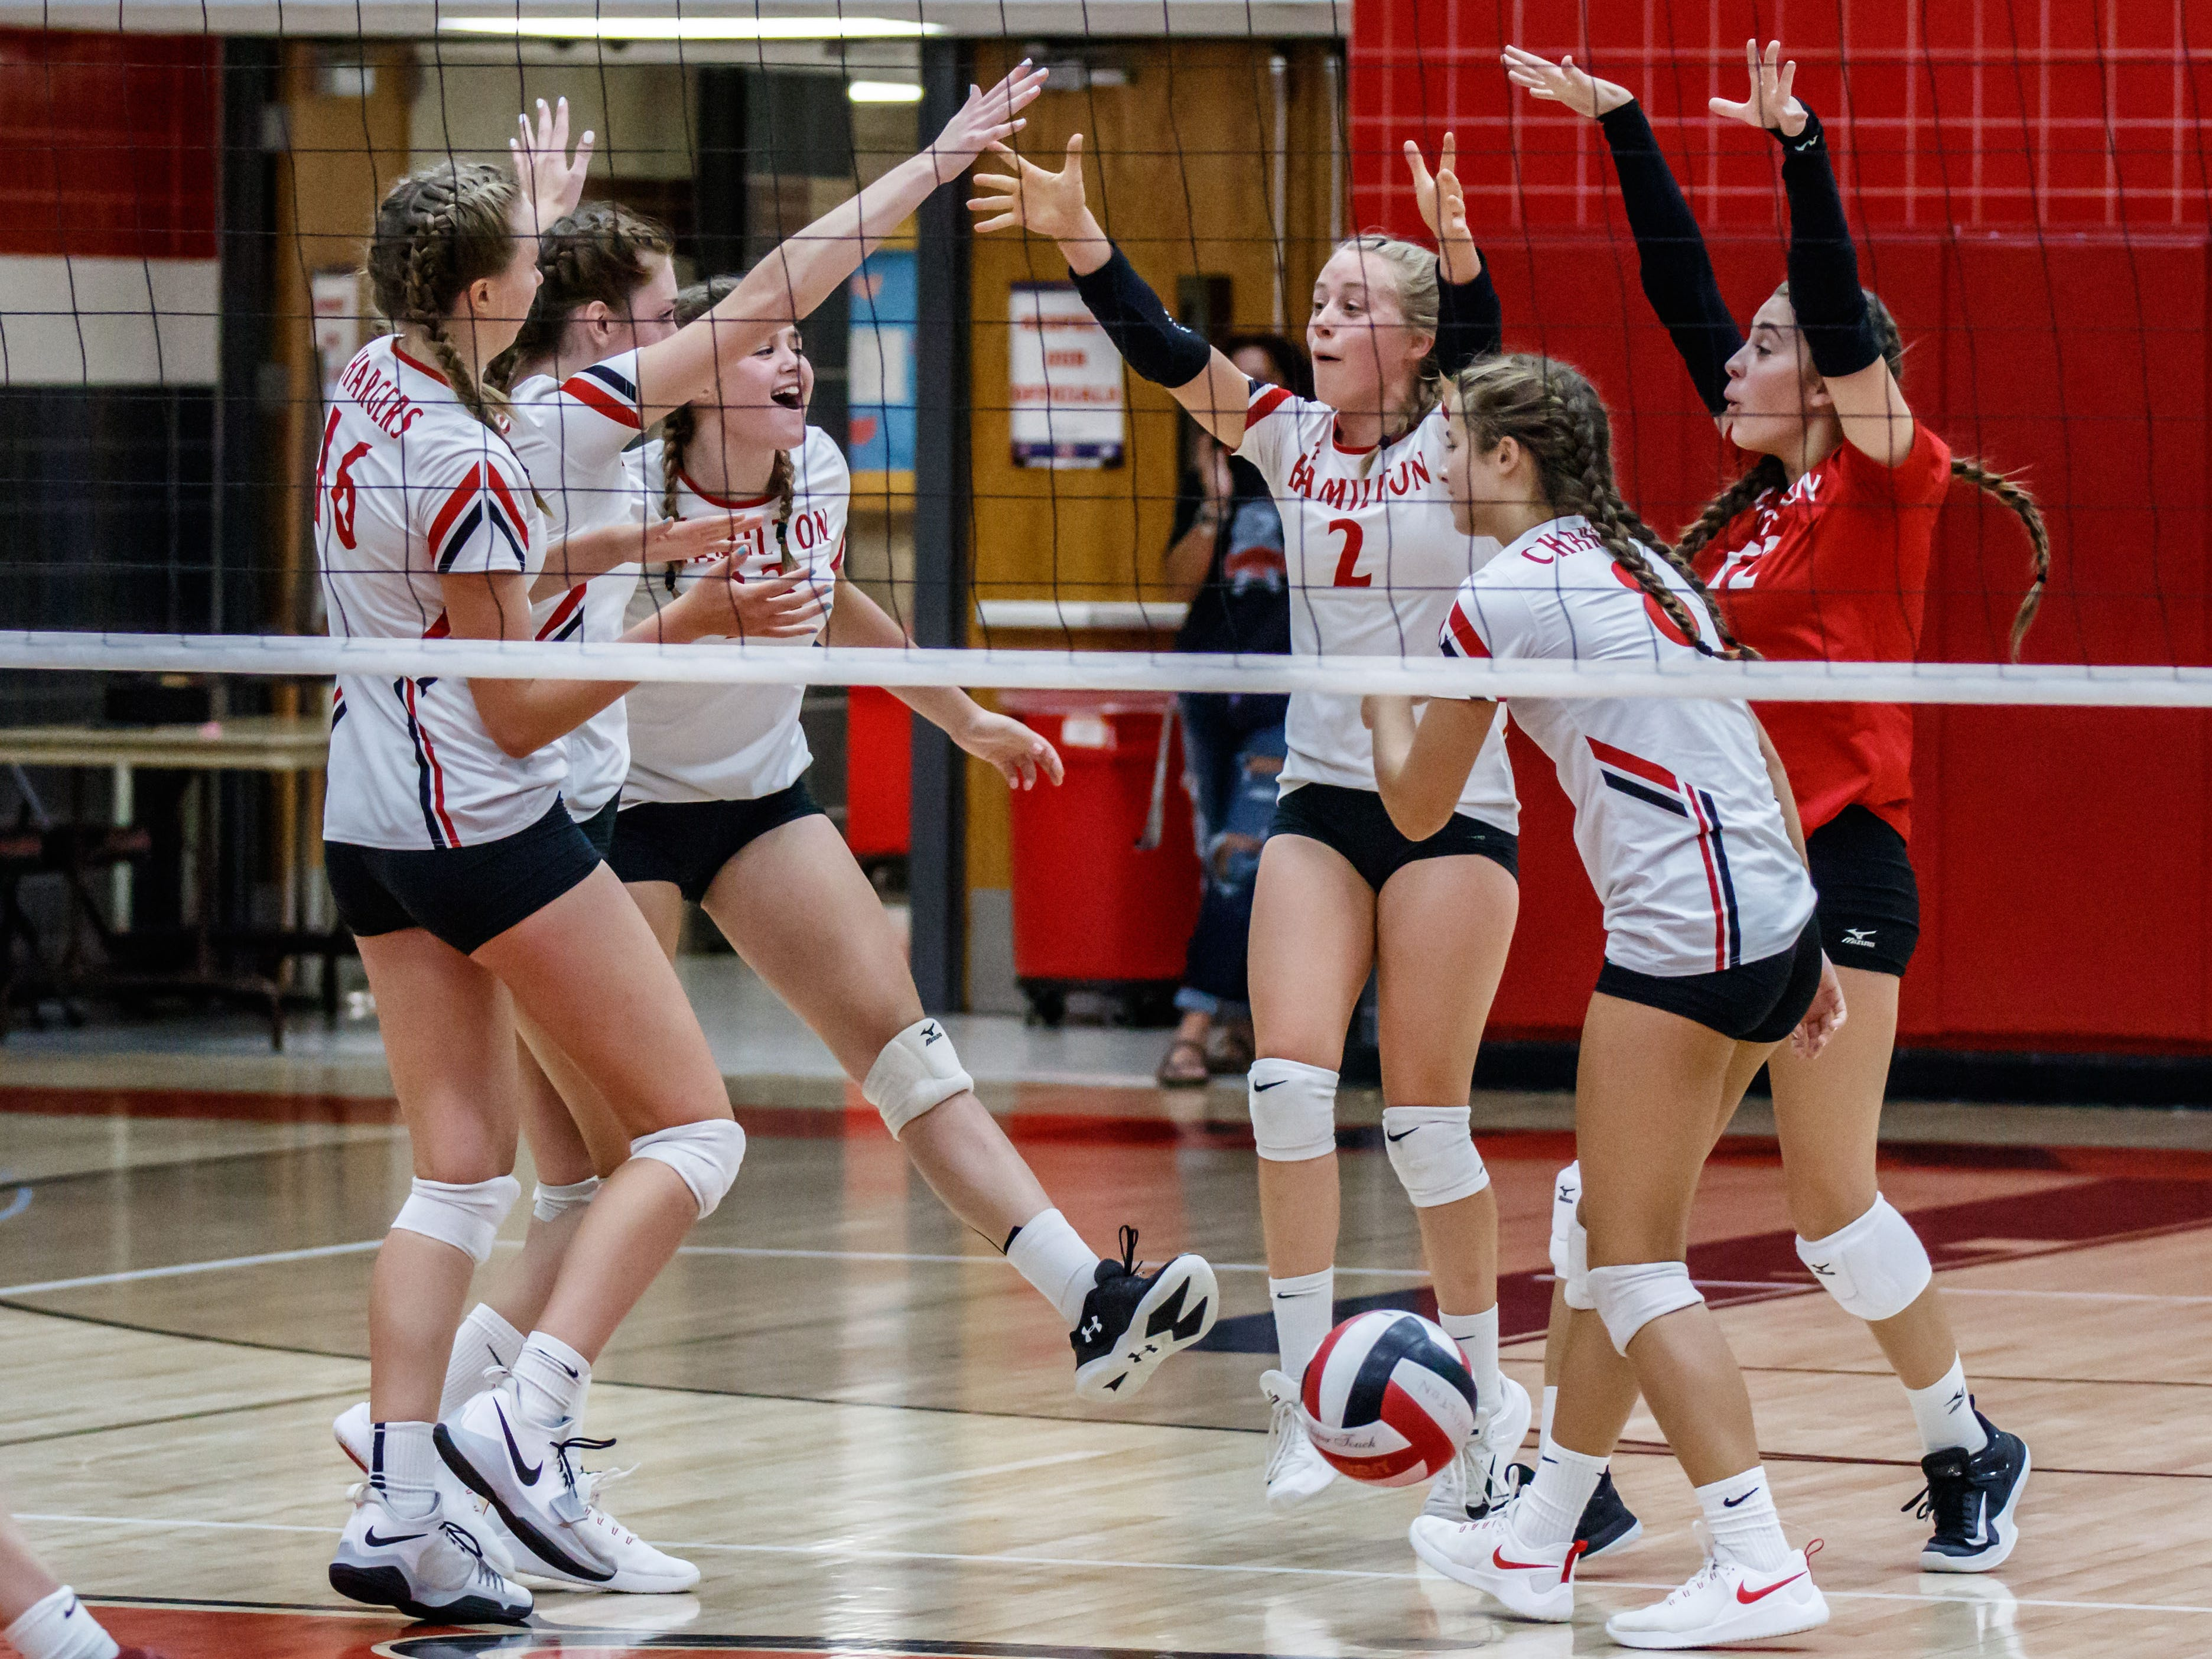 Sussex Hamilton players celebrate a point during the game at home against Menomonee Falls on Tuesday, August 28, 2018.